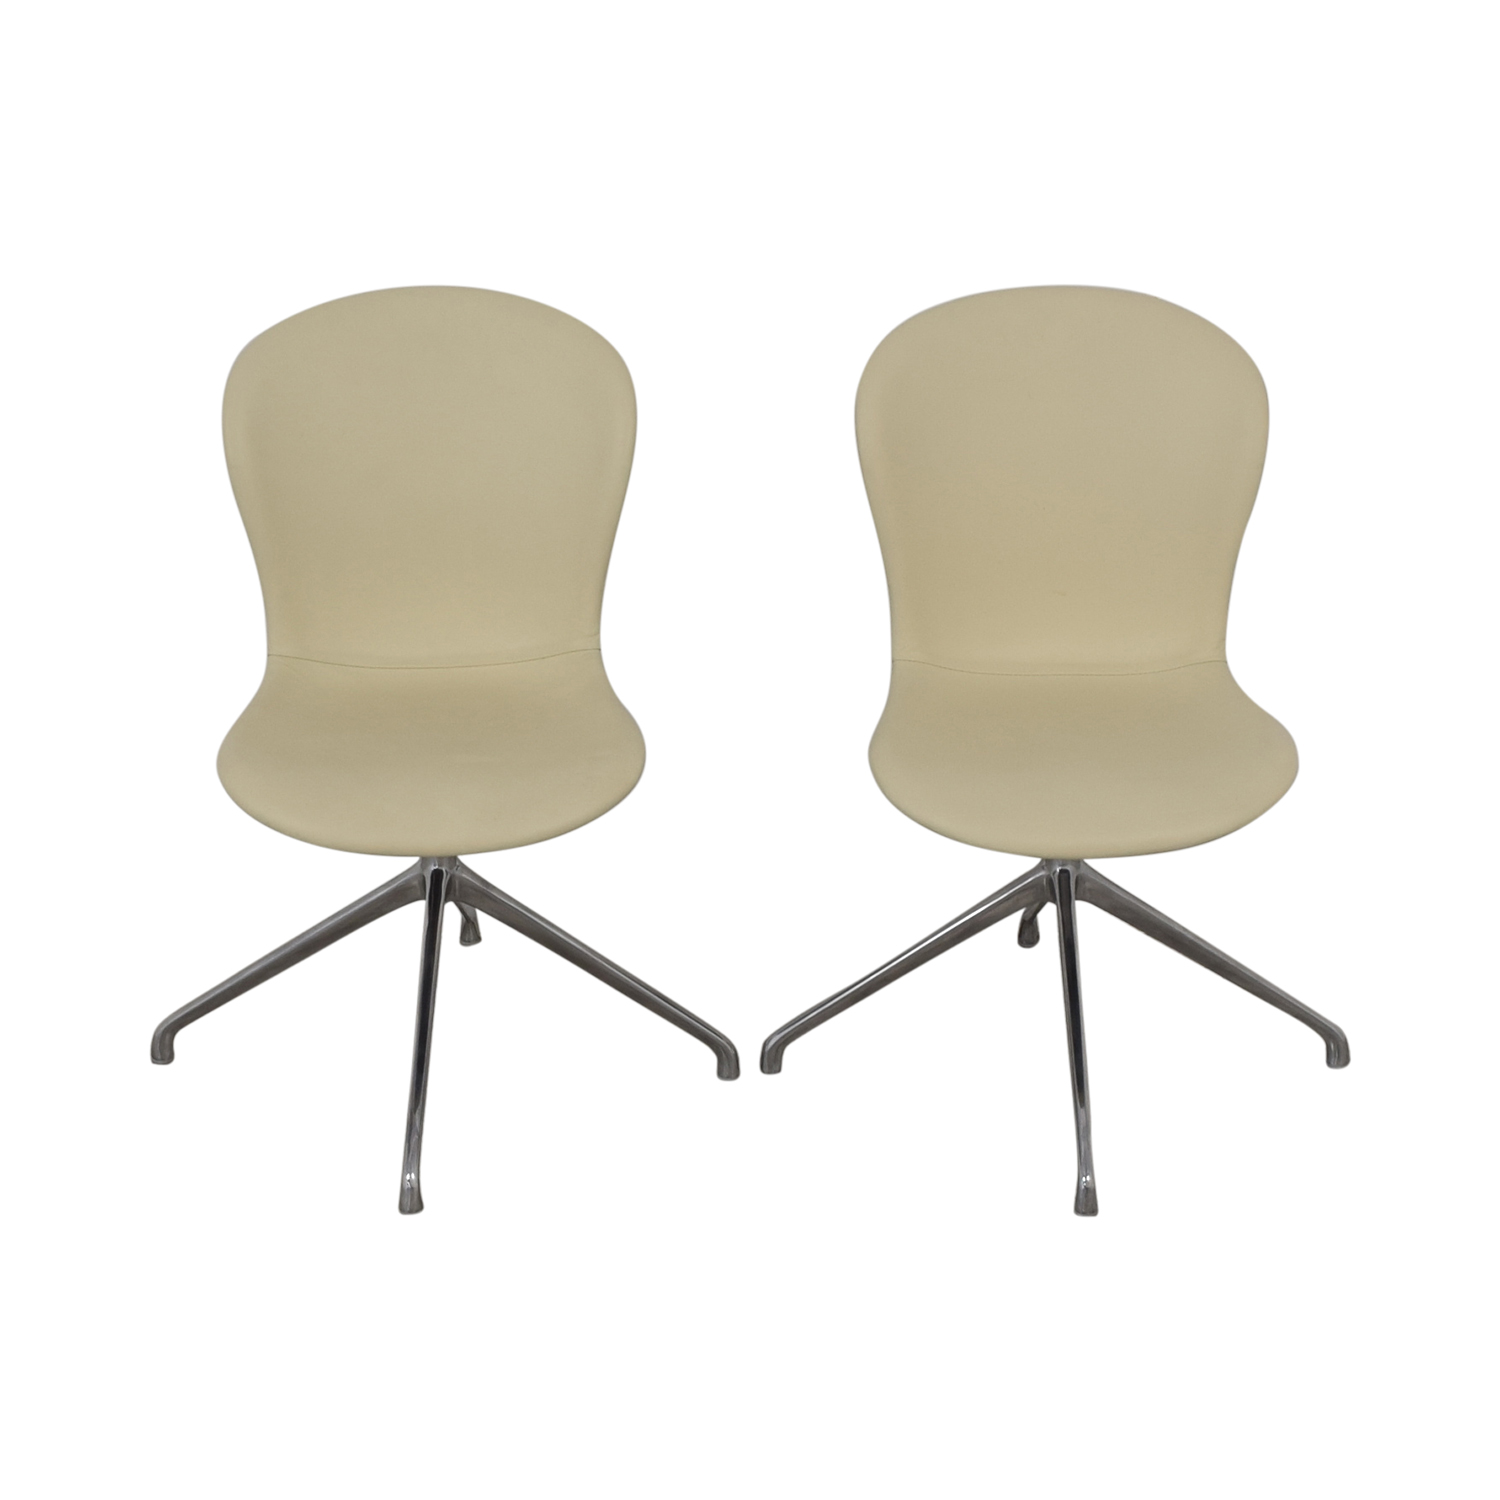 BoConcept BoConcept Adelaide Dining Chairs dimensions